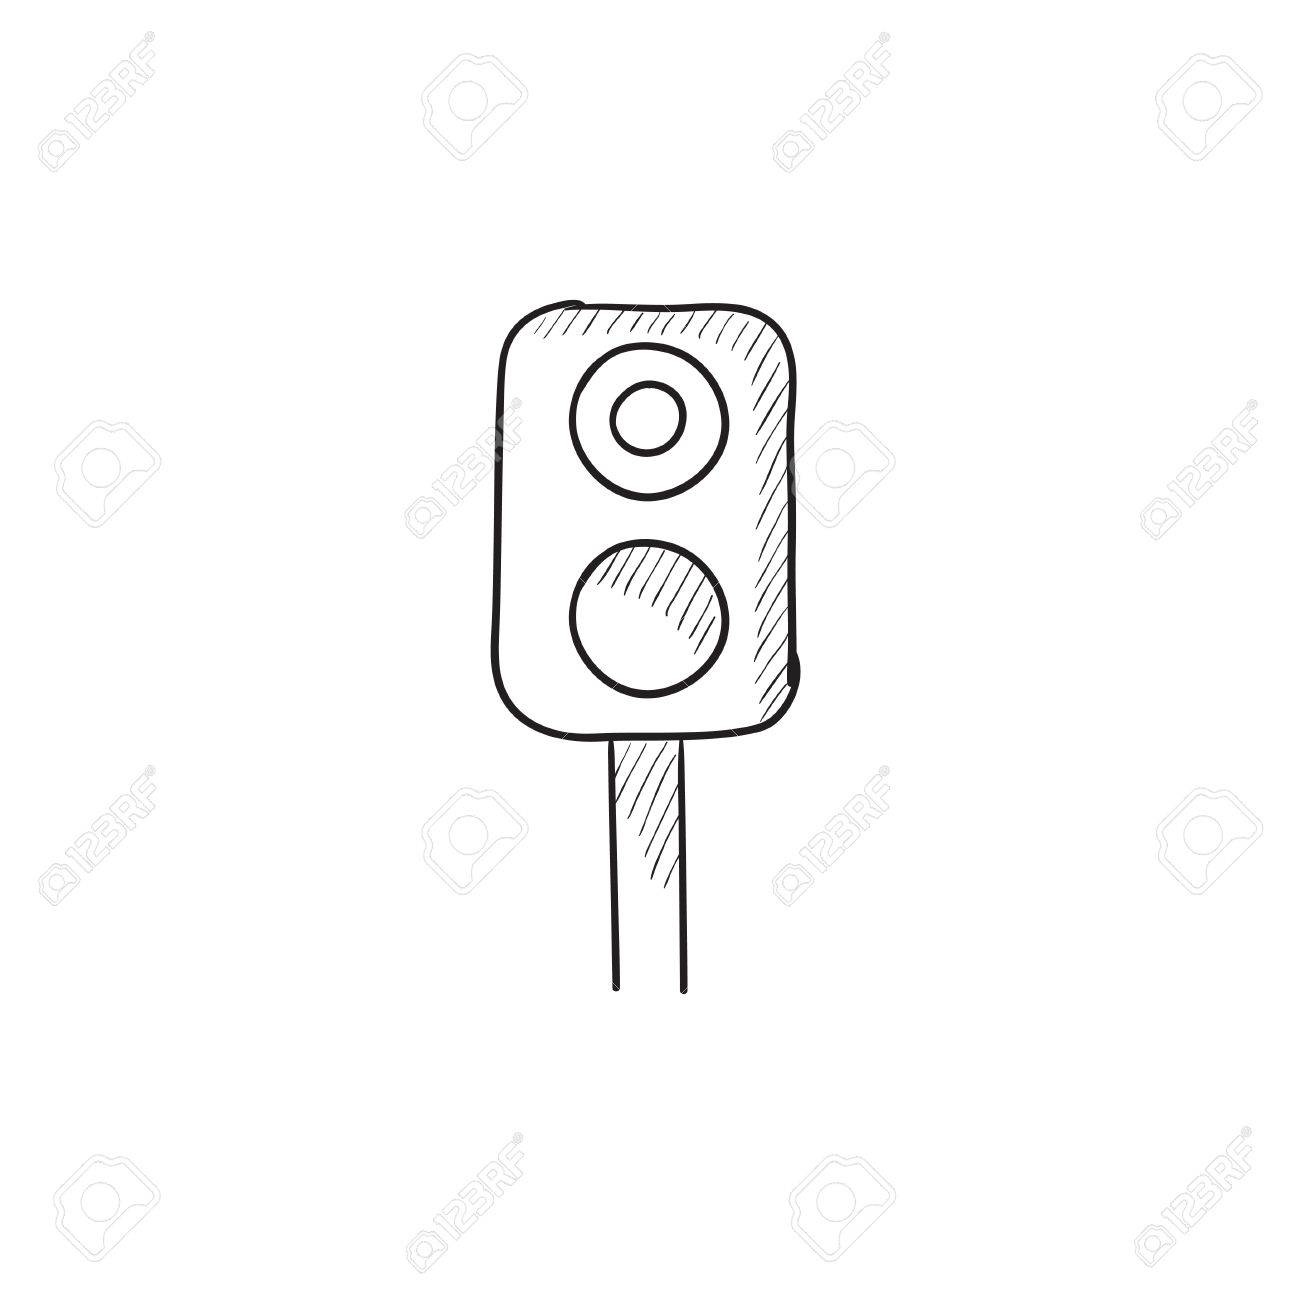 Railway Traffic Light Vector Sketch Icon Isolated On Background ... for Traffic Light Sketch  58lpg